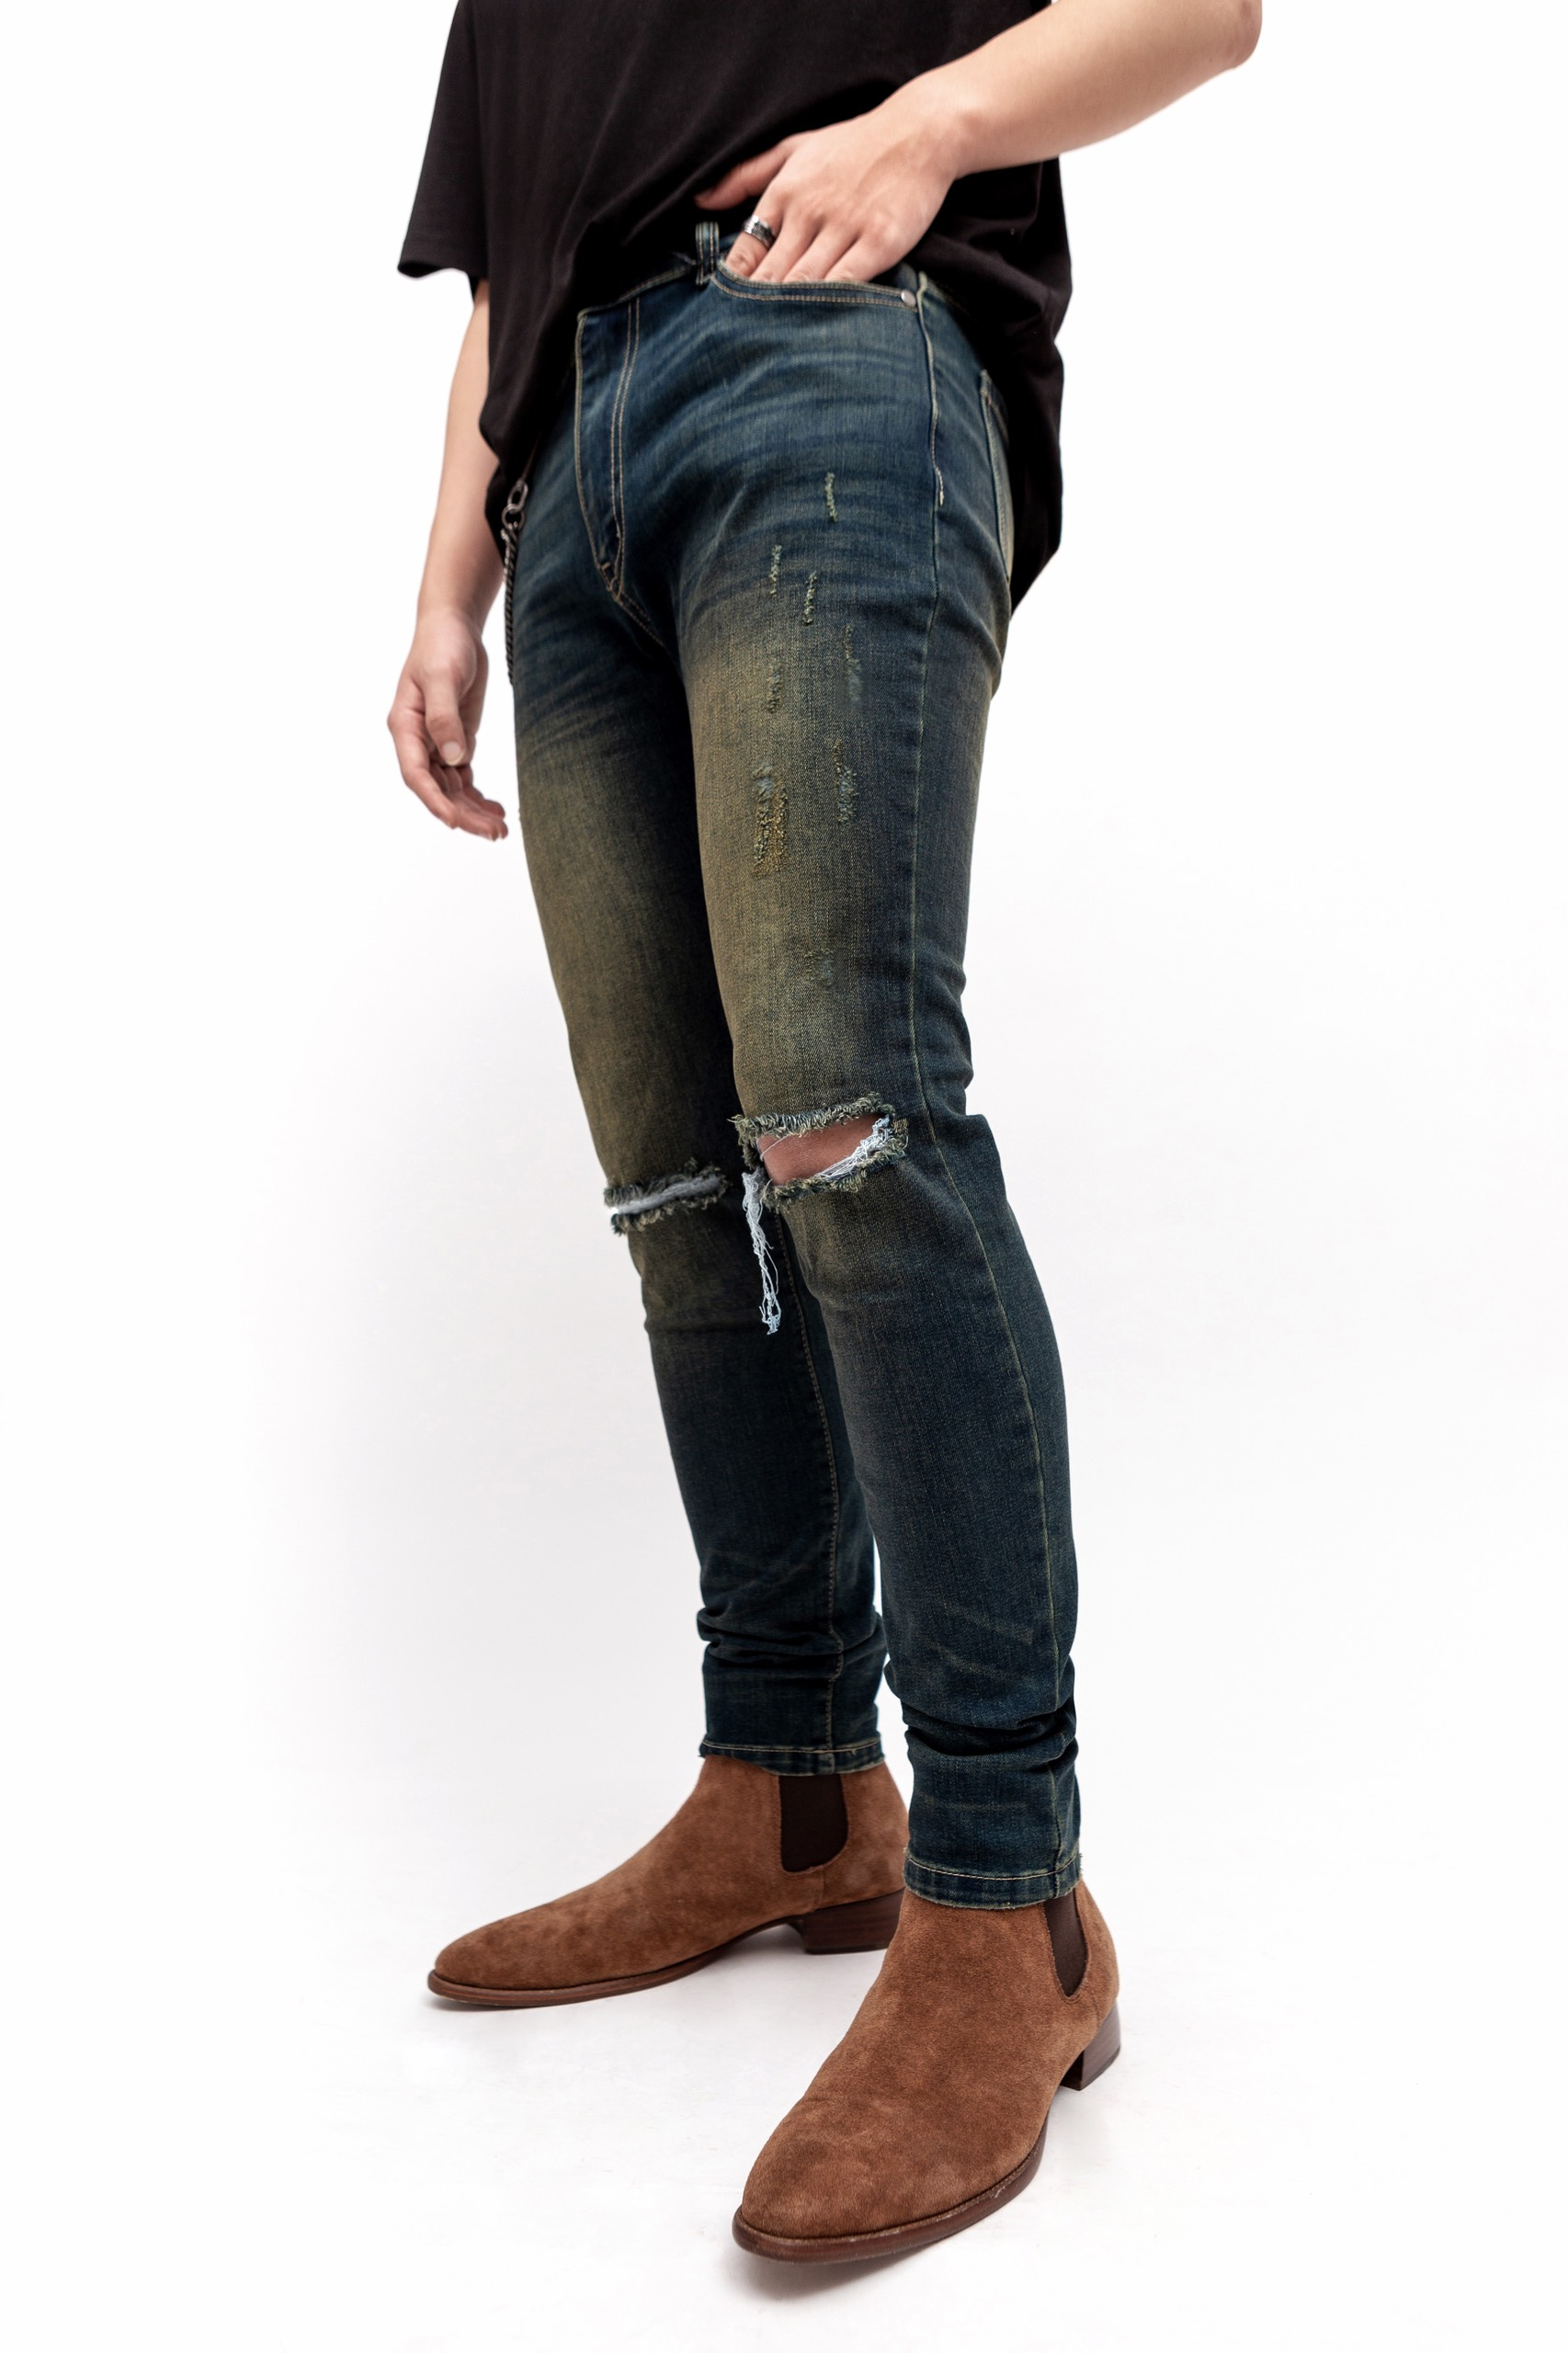 Fade Distressed Jeans